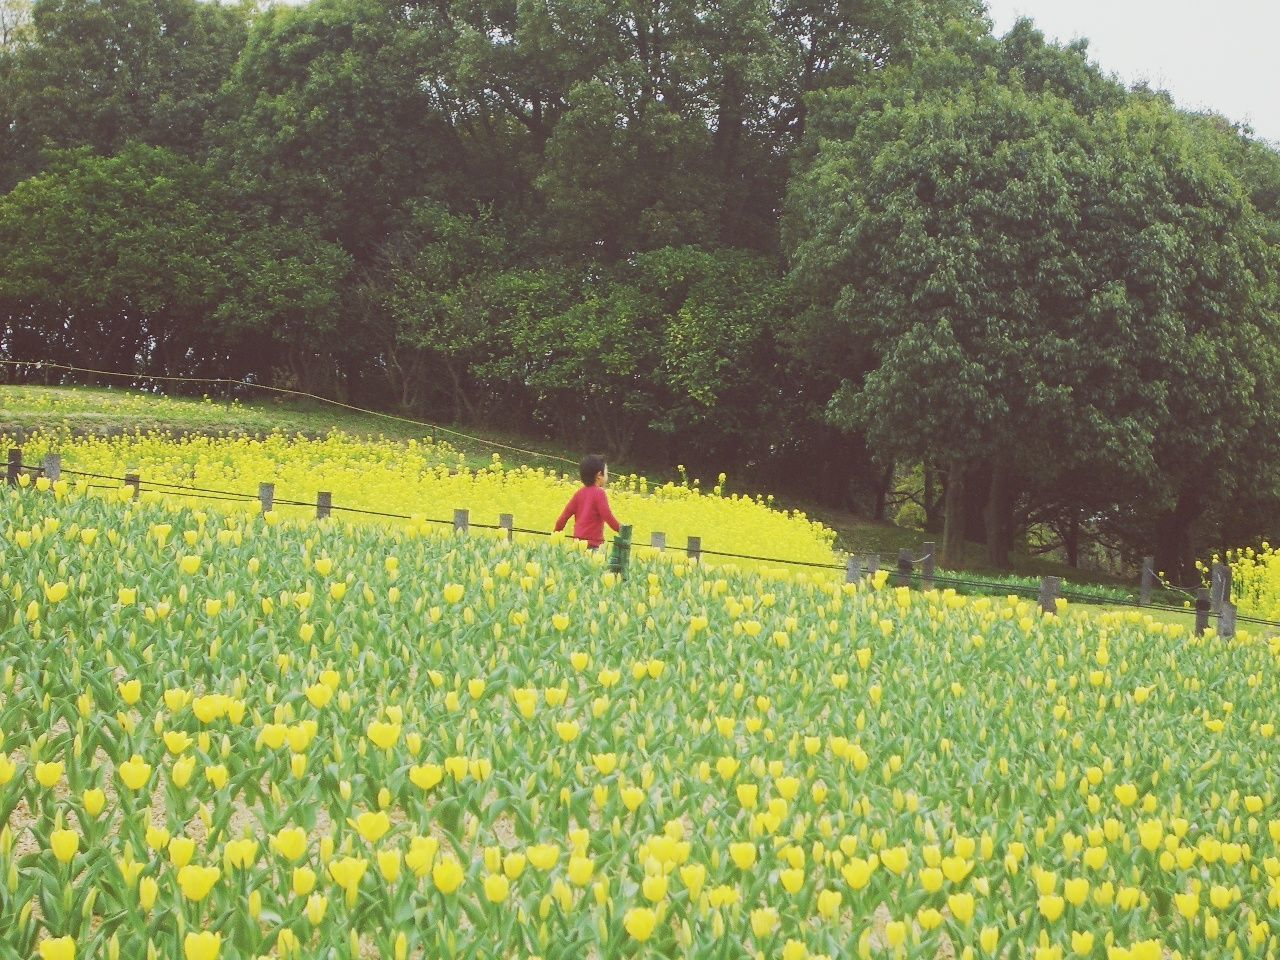 growth, flower, yellow, nature, beauty in nature, tree, real people, rear view, tranquil scene, one person, day, tranquility, field, outdoors, plant, fragility, scenics, agriculture, oilseed rape, women, lifestyles, rural scene, freshness, adult, people